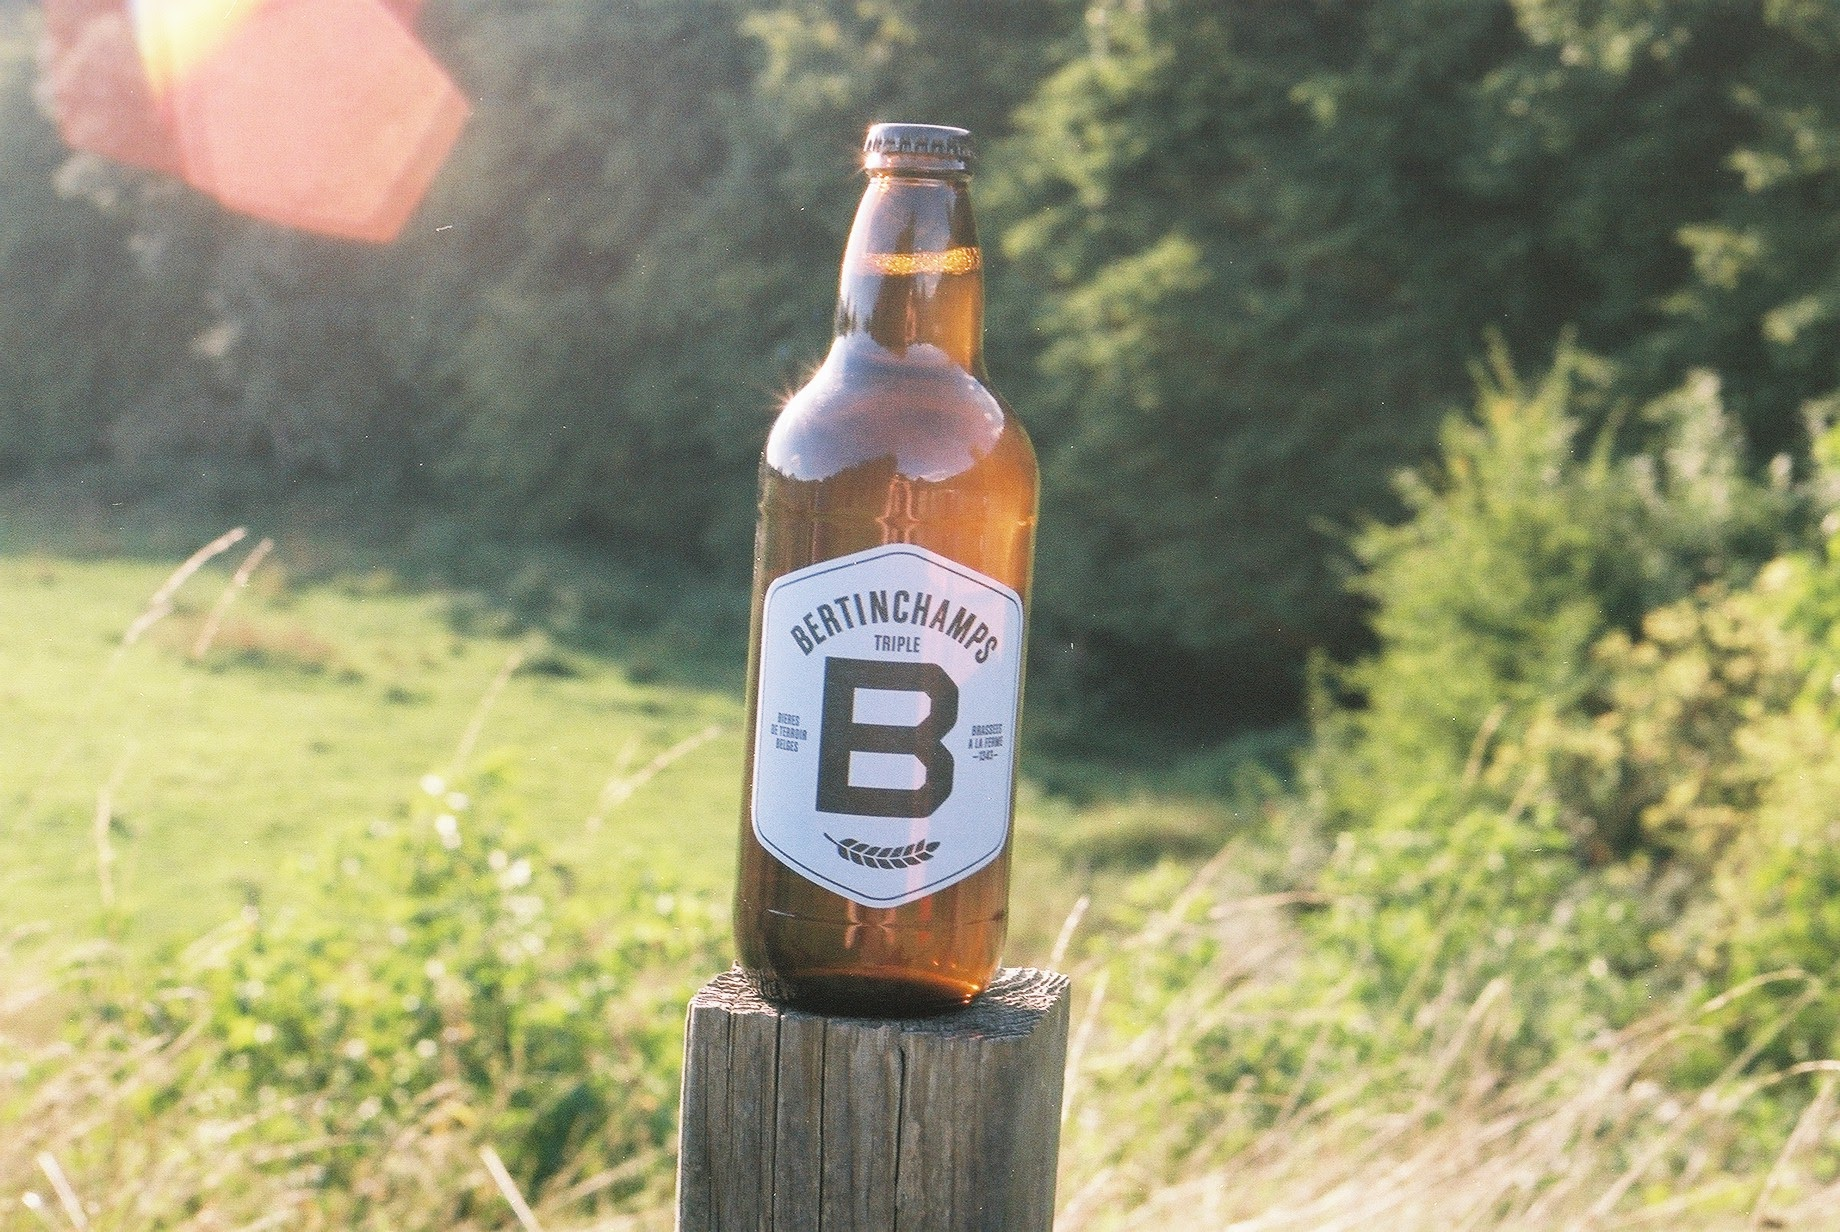 beer, beer blog, beer photography, bikepacking beer, brewery, ipa, canon, canon ae-1, 35mm, film, film is not dead, shoot film, bicycle touring apocalypse, photography blog, food, foodie, food blog